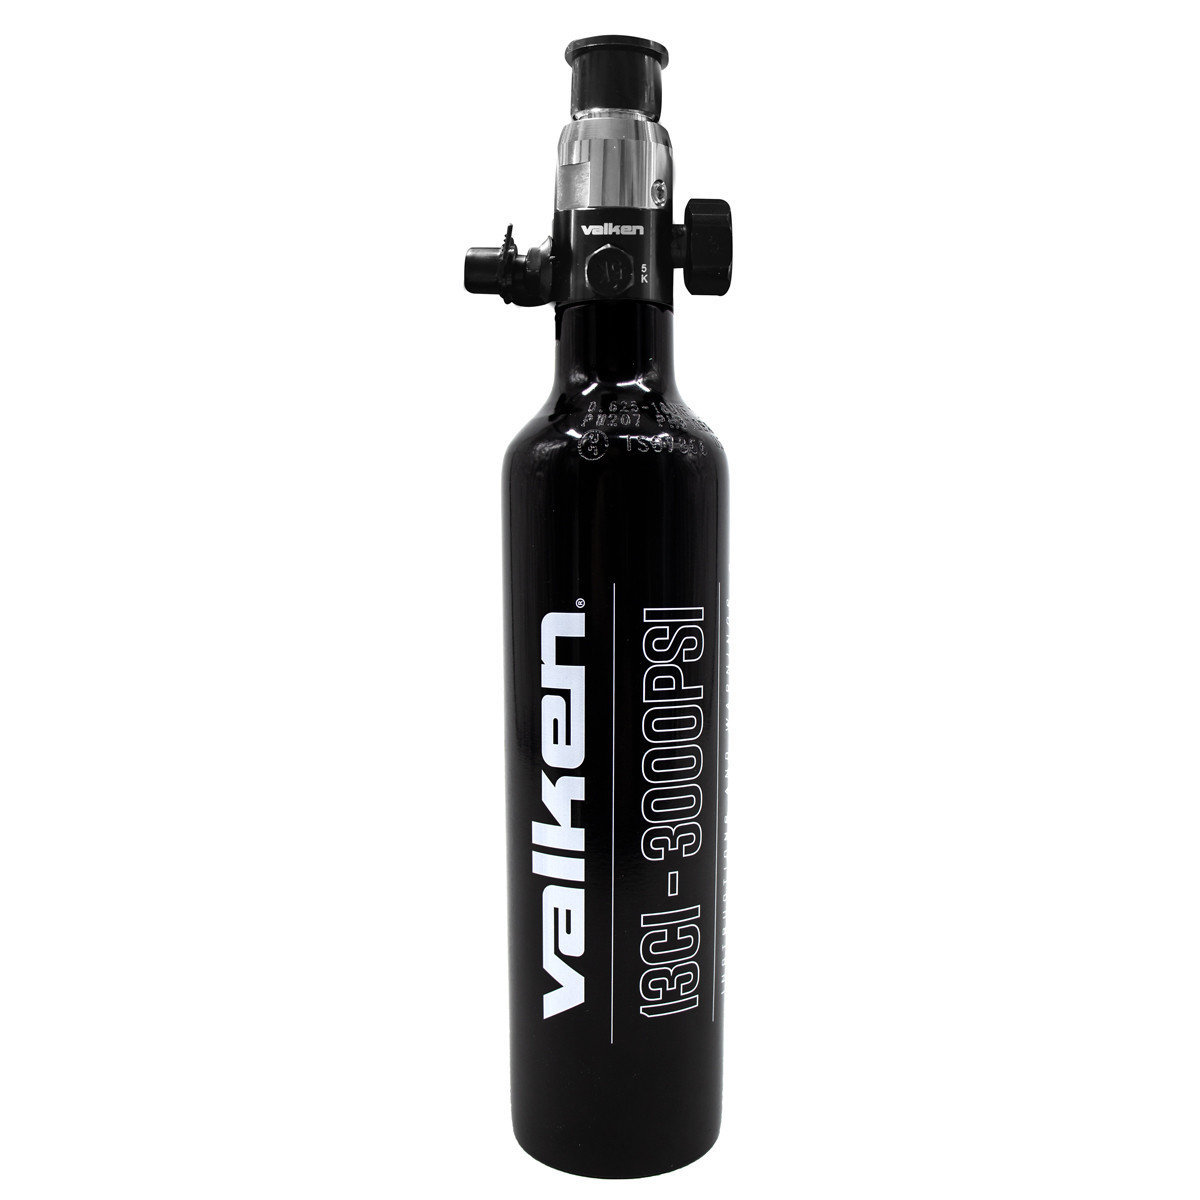 View larger image of Valken V2.0 13ci 3000psi Paintball Compressed Air System DOT/TC/Pi